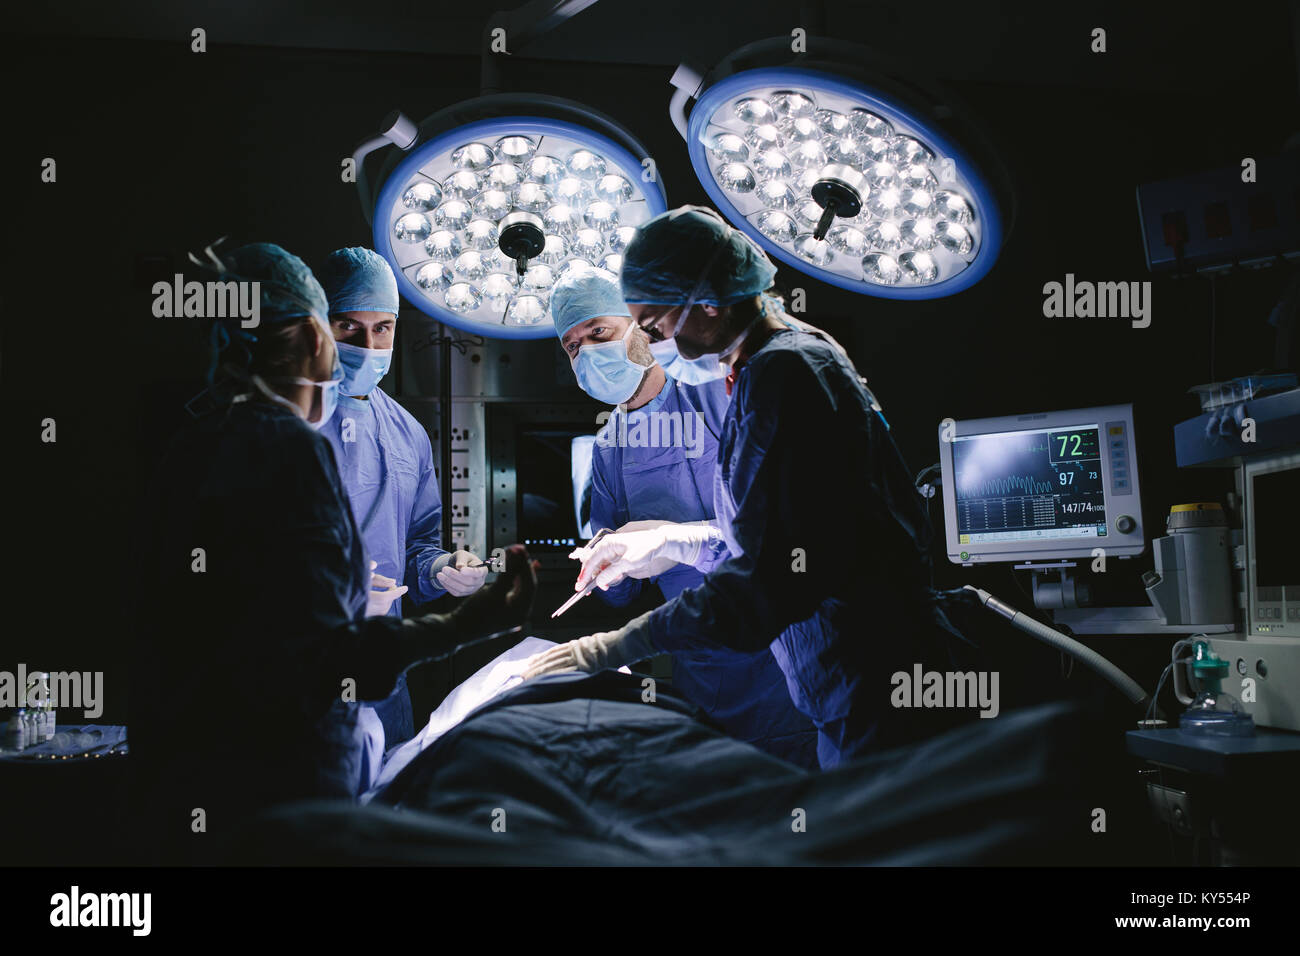 Medical team performing surgery in hospital. Group of surgeons at work in operation theater. - Stock Image